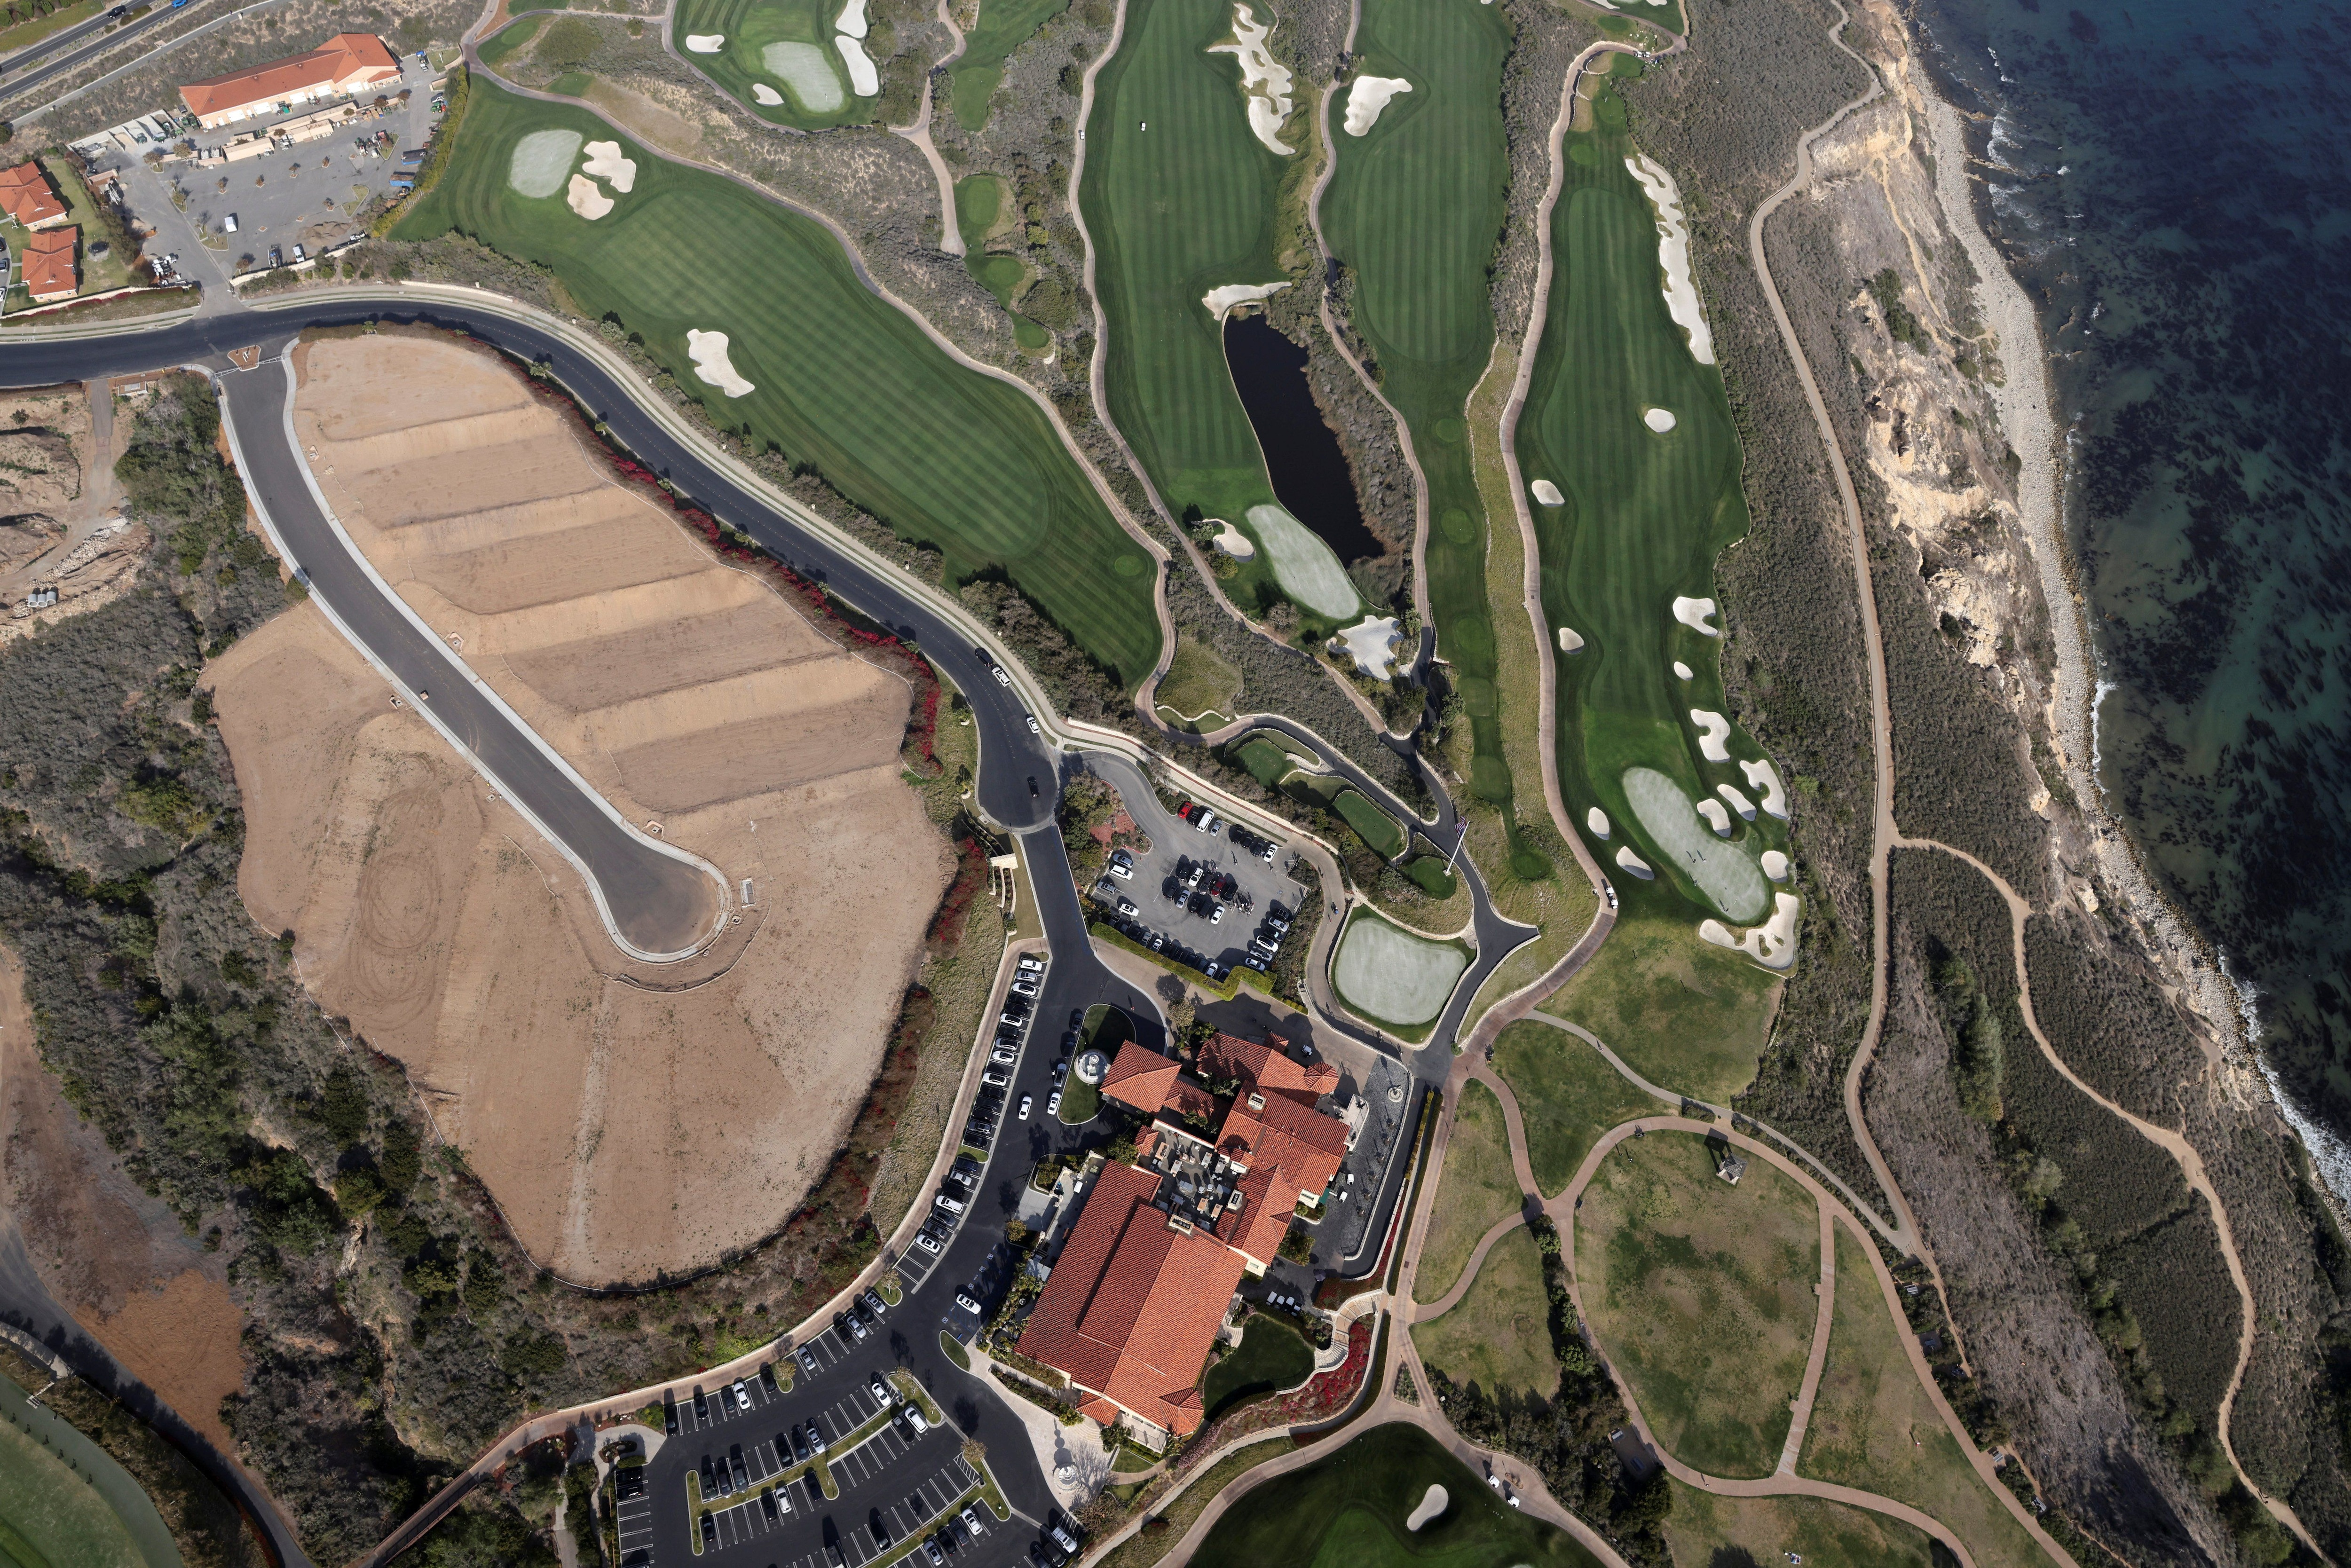 The Trump National Golf Club is seen in Rancho Palos Verdes, near Los Angeles, California, United States, on April 7, 2021. (REUTERS / Lucy Nicholson).